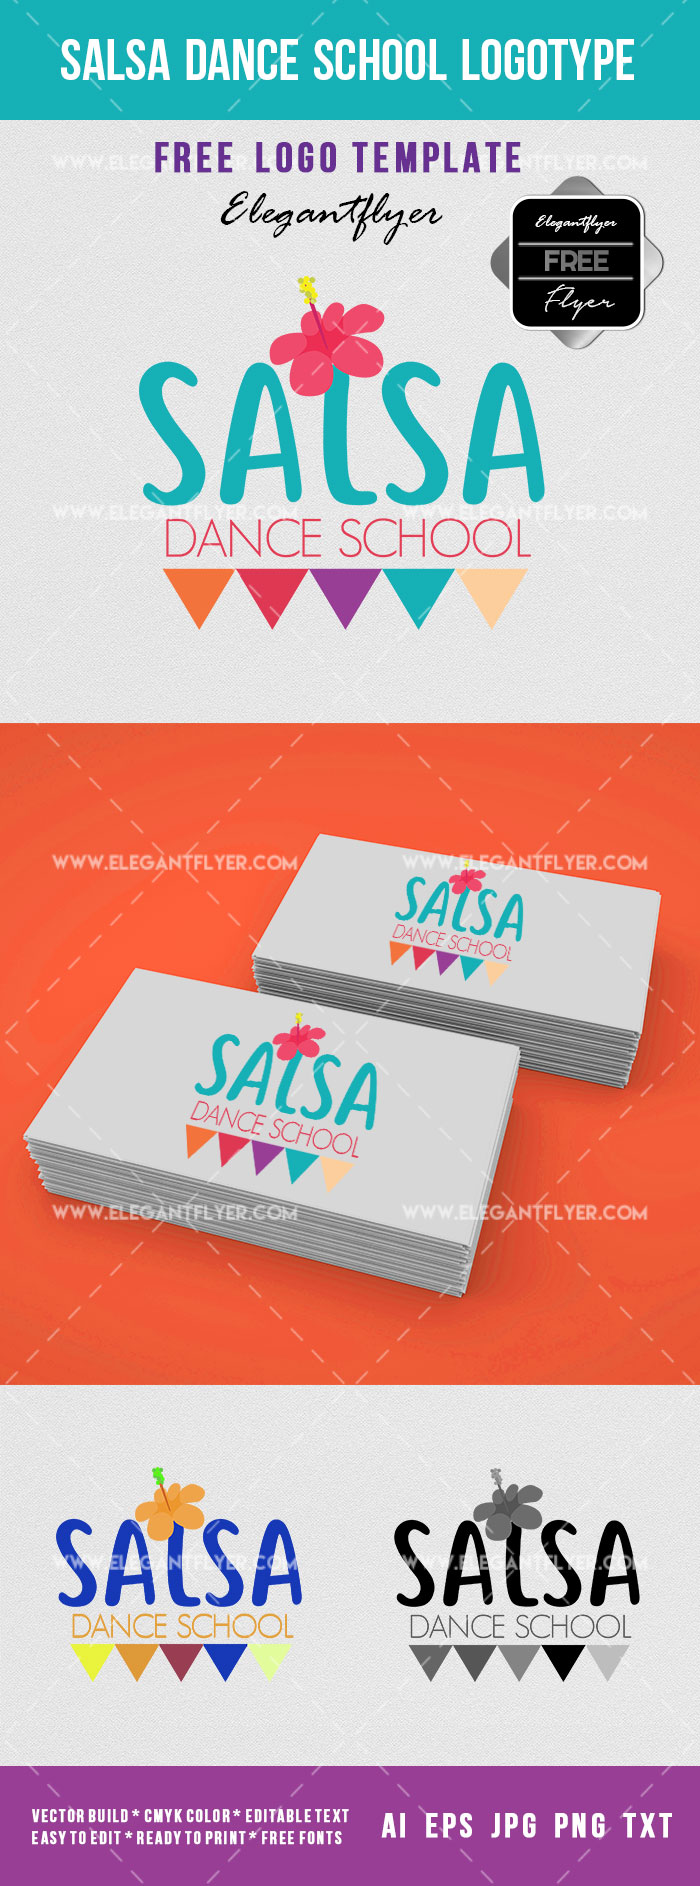 Salsa Dance School Logotype – Free Logo Template